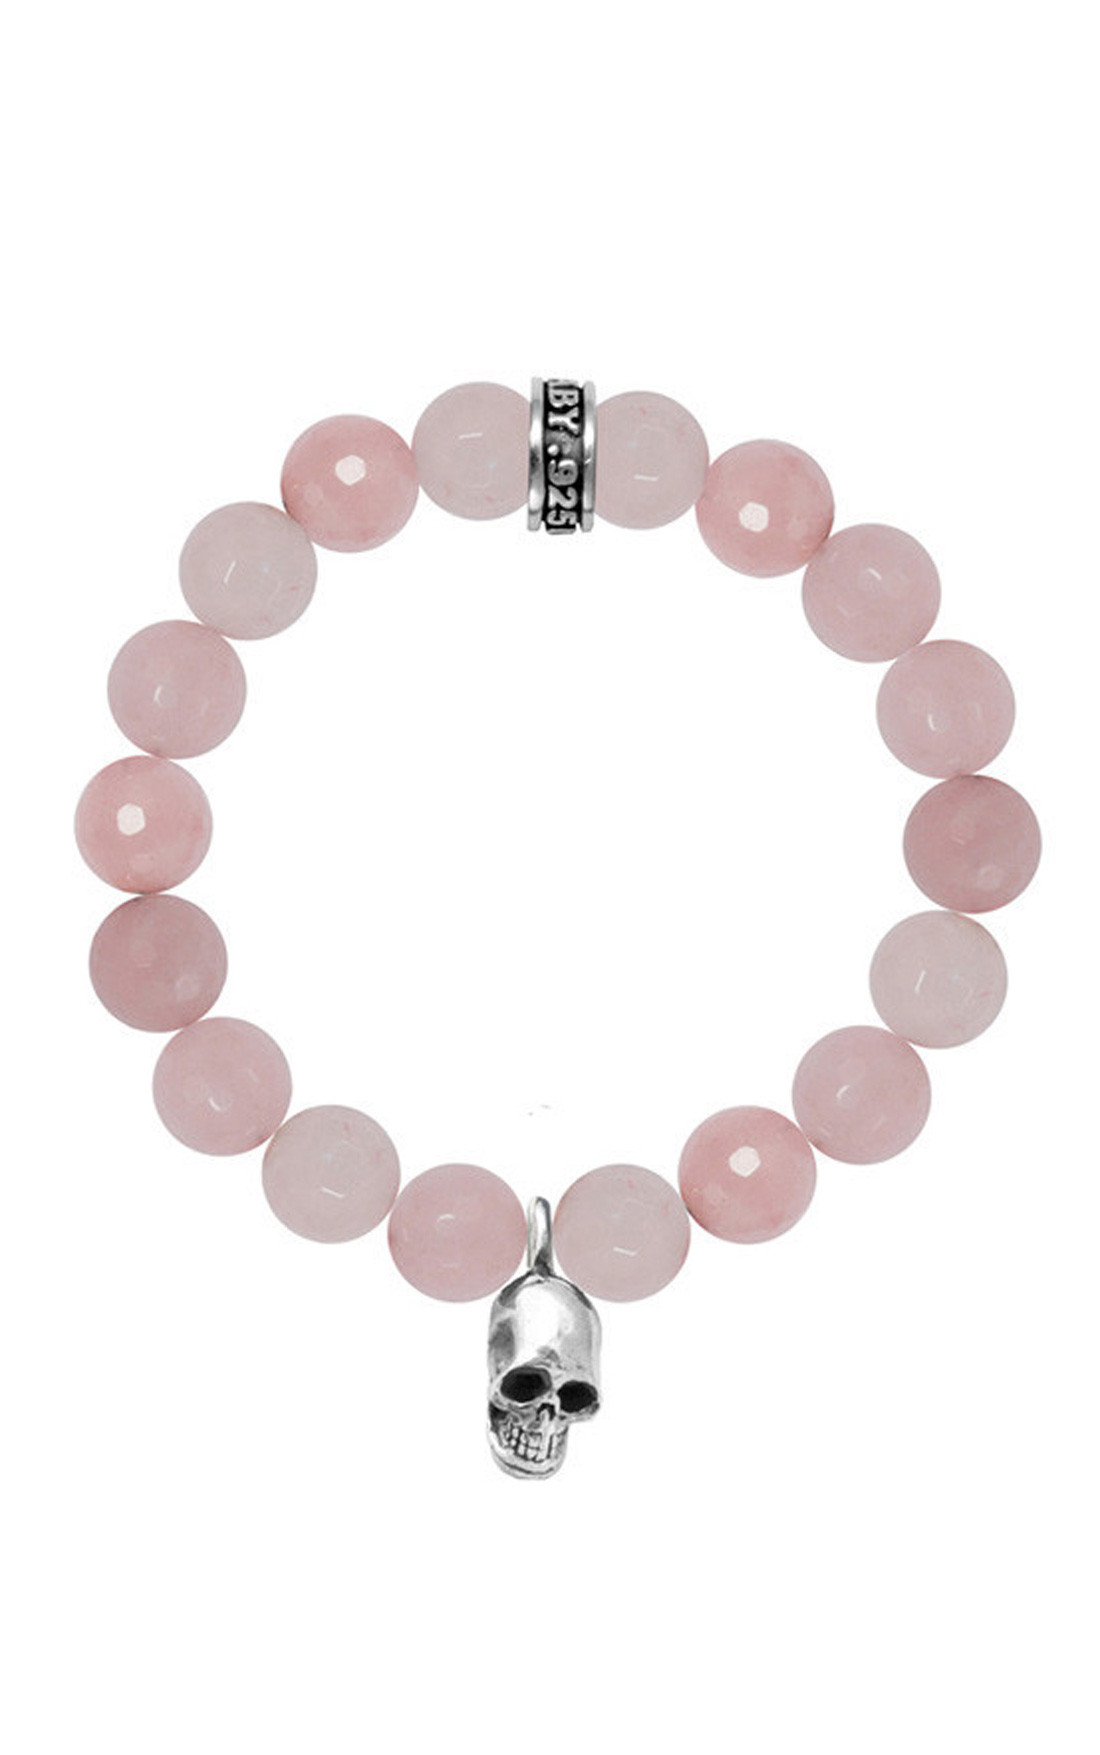 King Baby - Rose Quartz Bead Bracelet with Skull (Q40-5616)